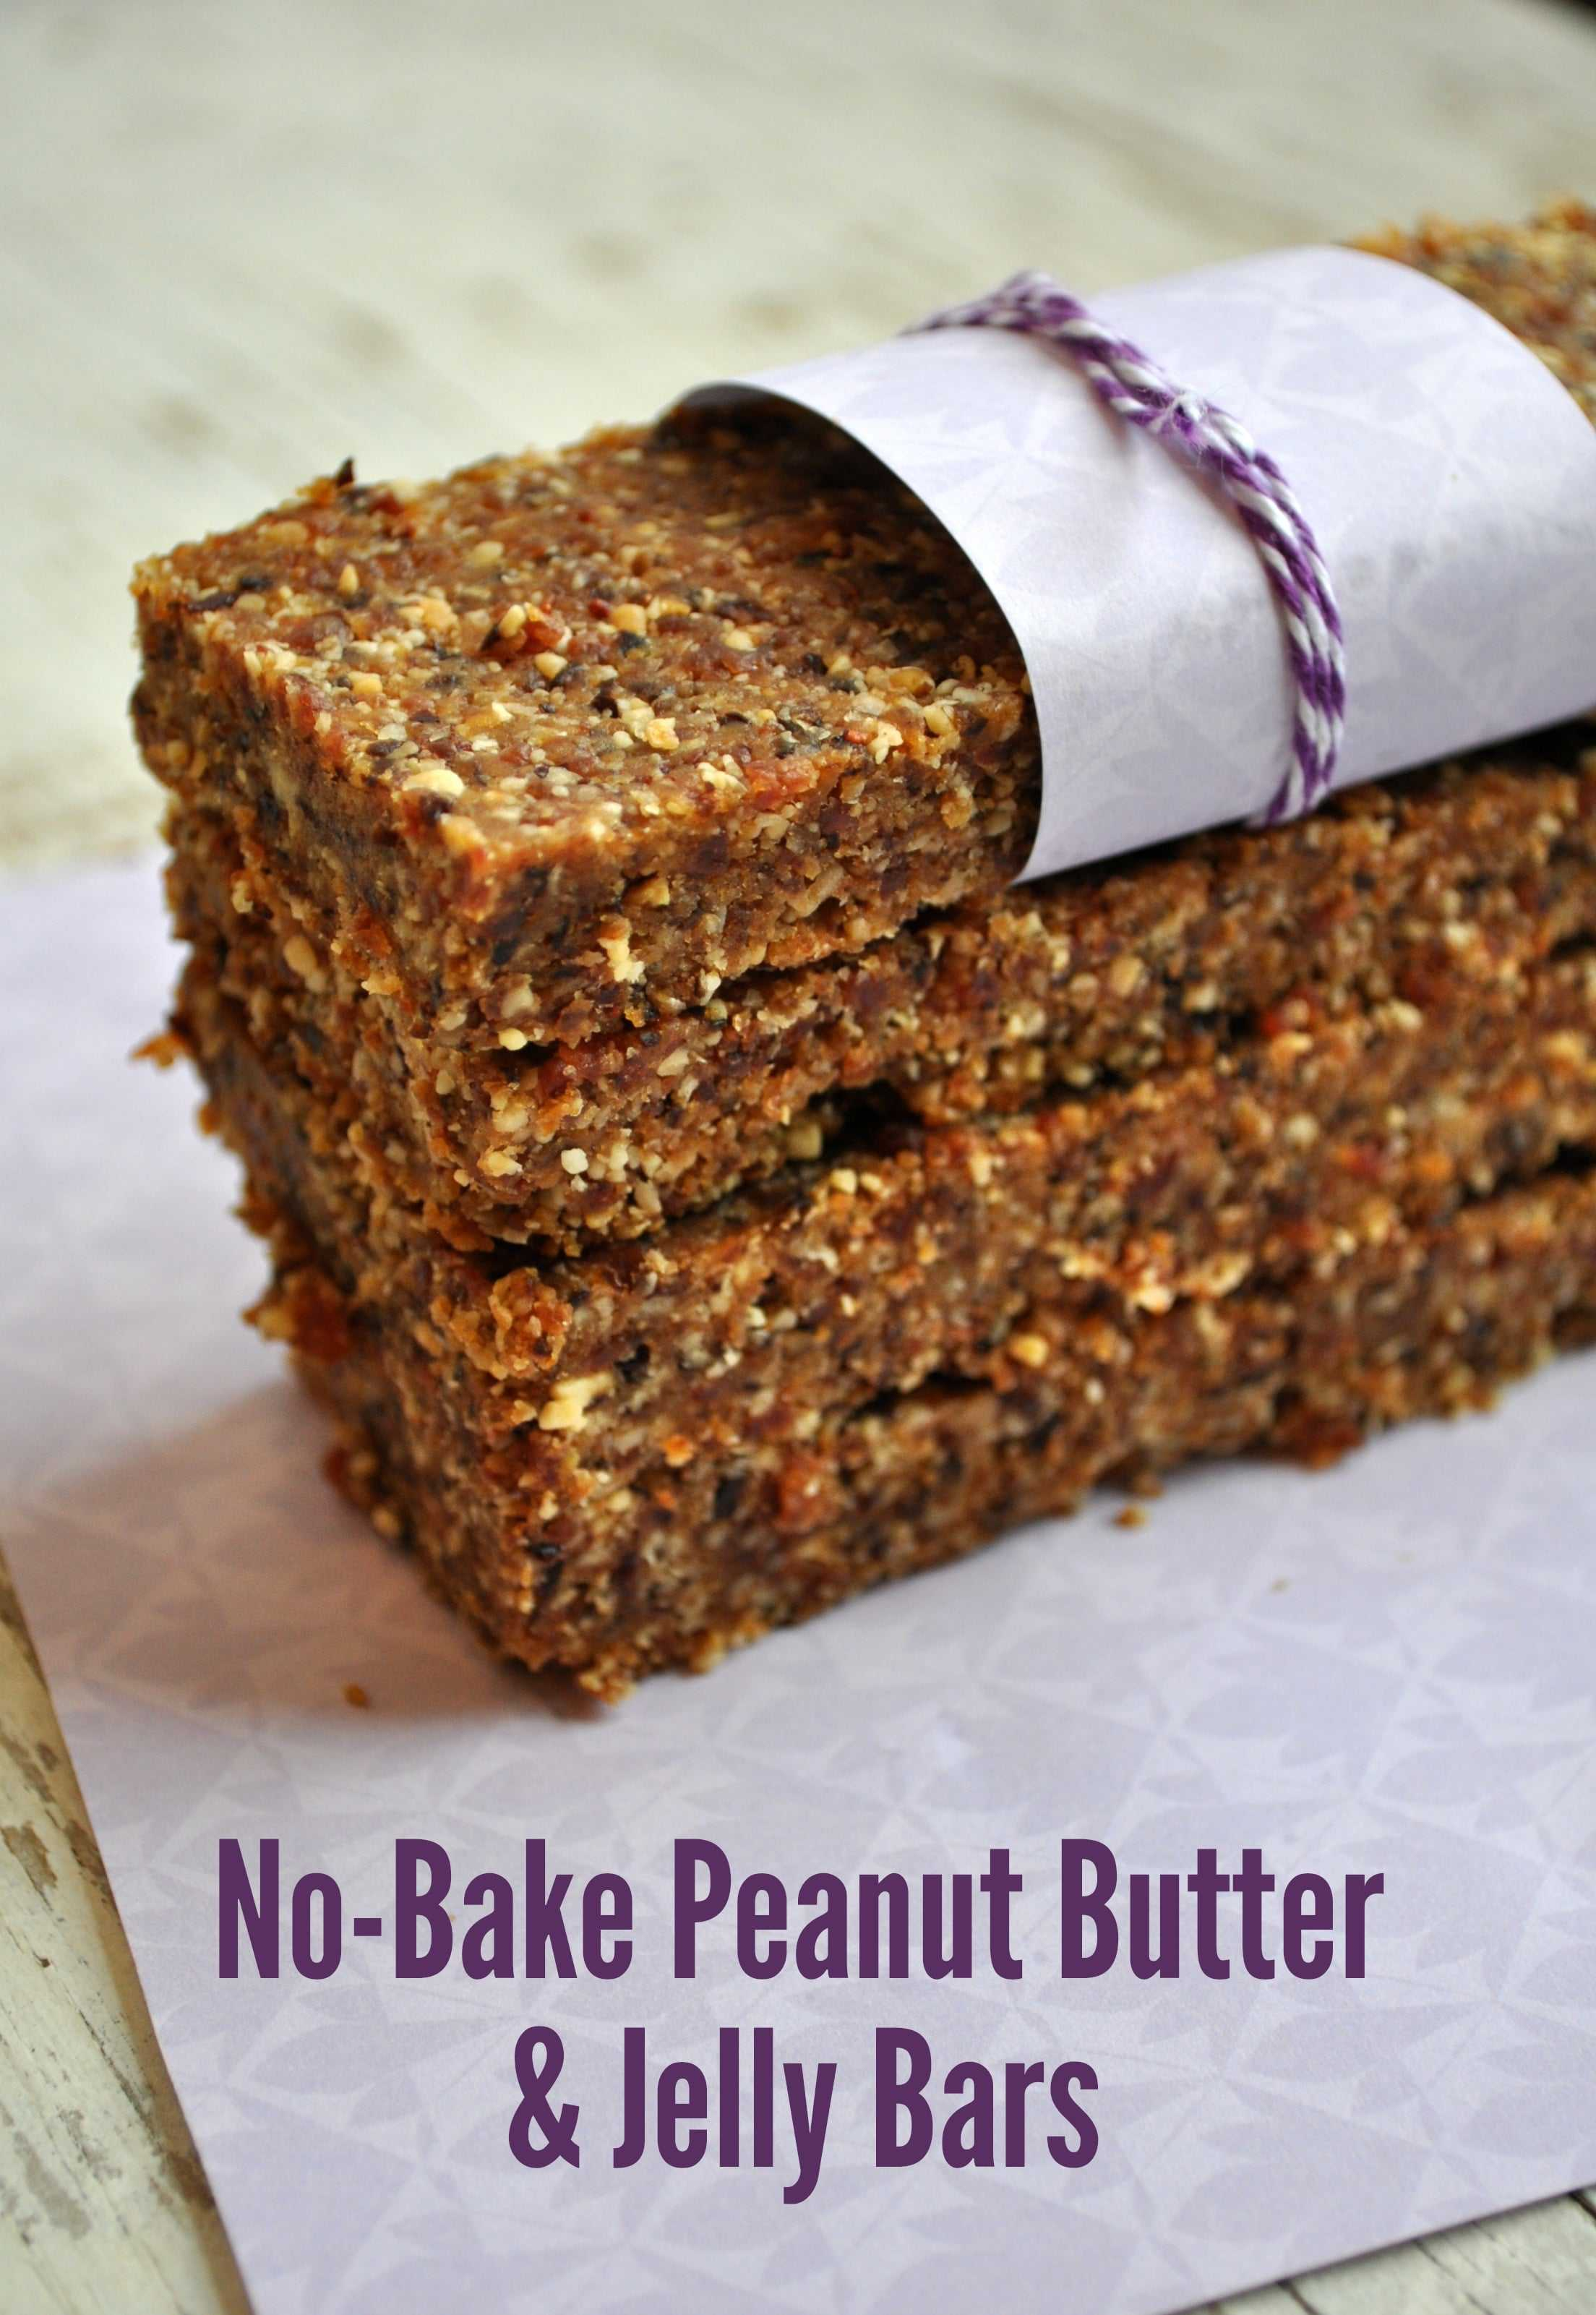 Minute No-Bake Peanut Butter and Jelly Bars - The Seasoned Mom